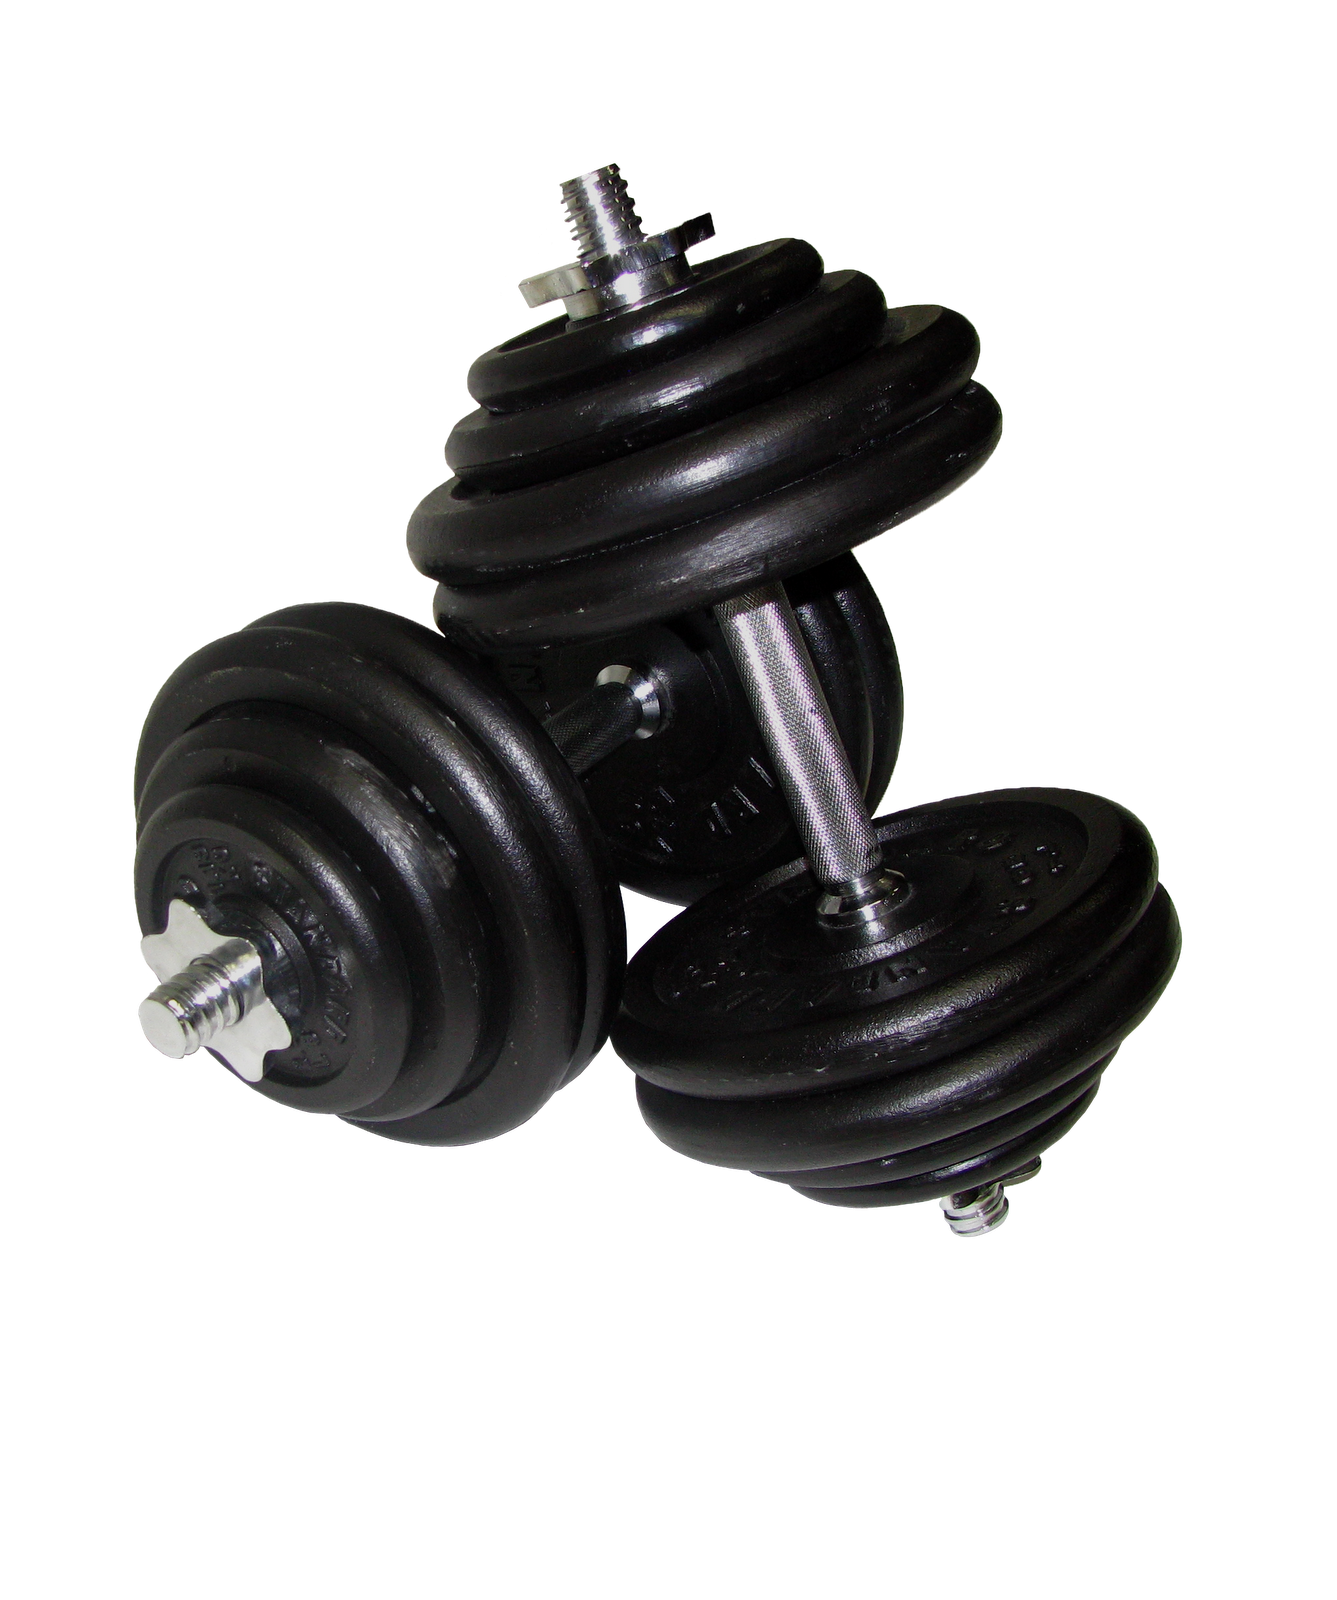 Dumbbells clipart hand weight. Png transparent images all